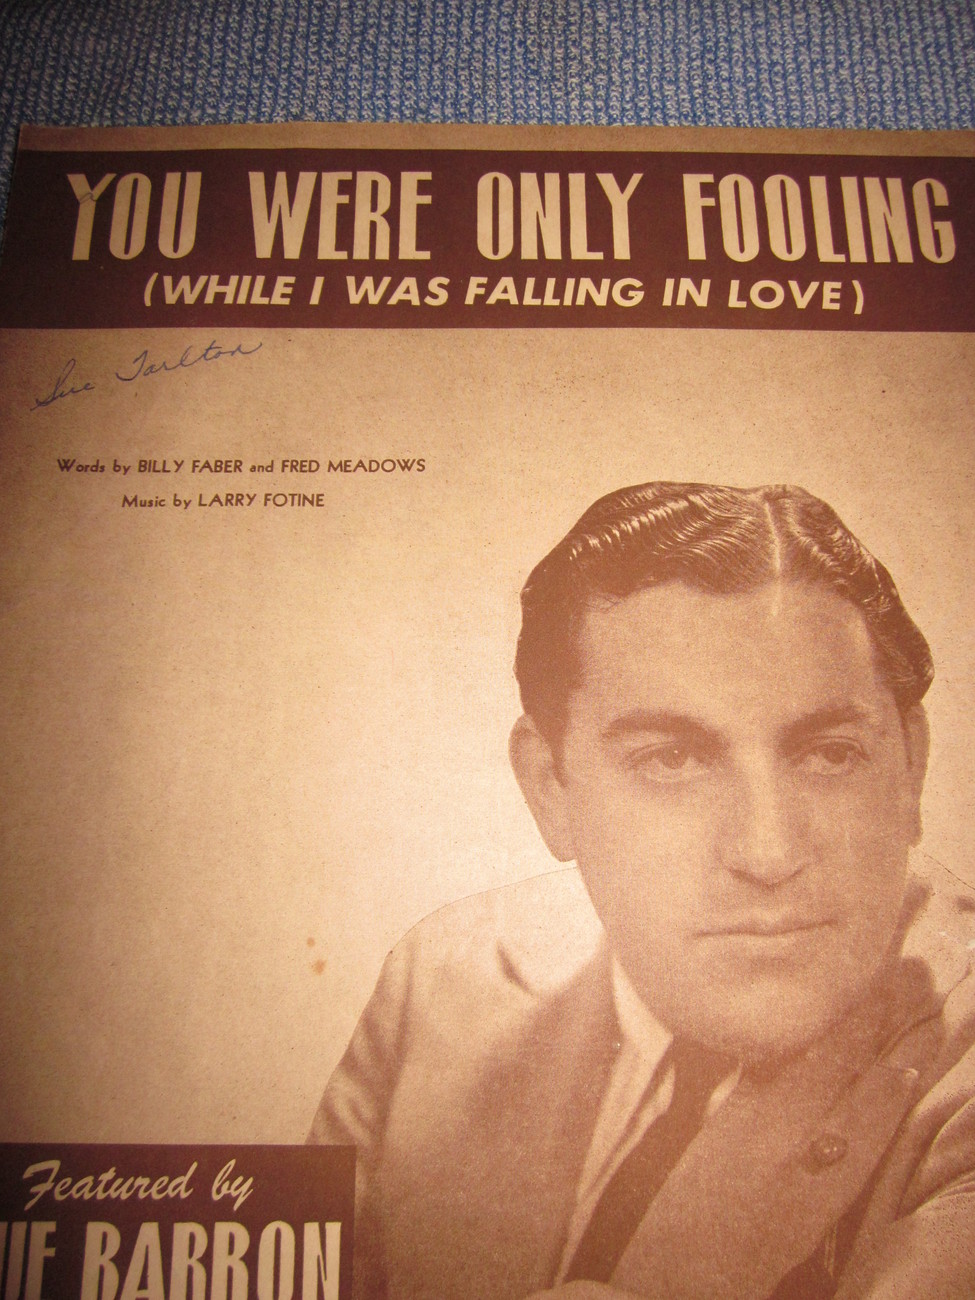 Vintage Sheet Music You Were Only Fooling - Blue Barron Orchestra 1946